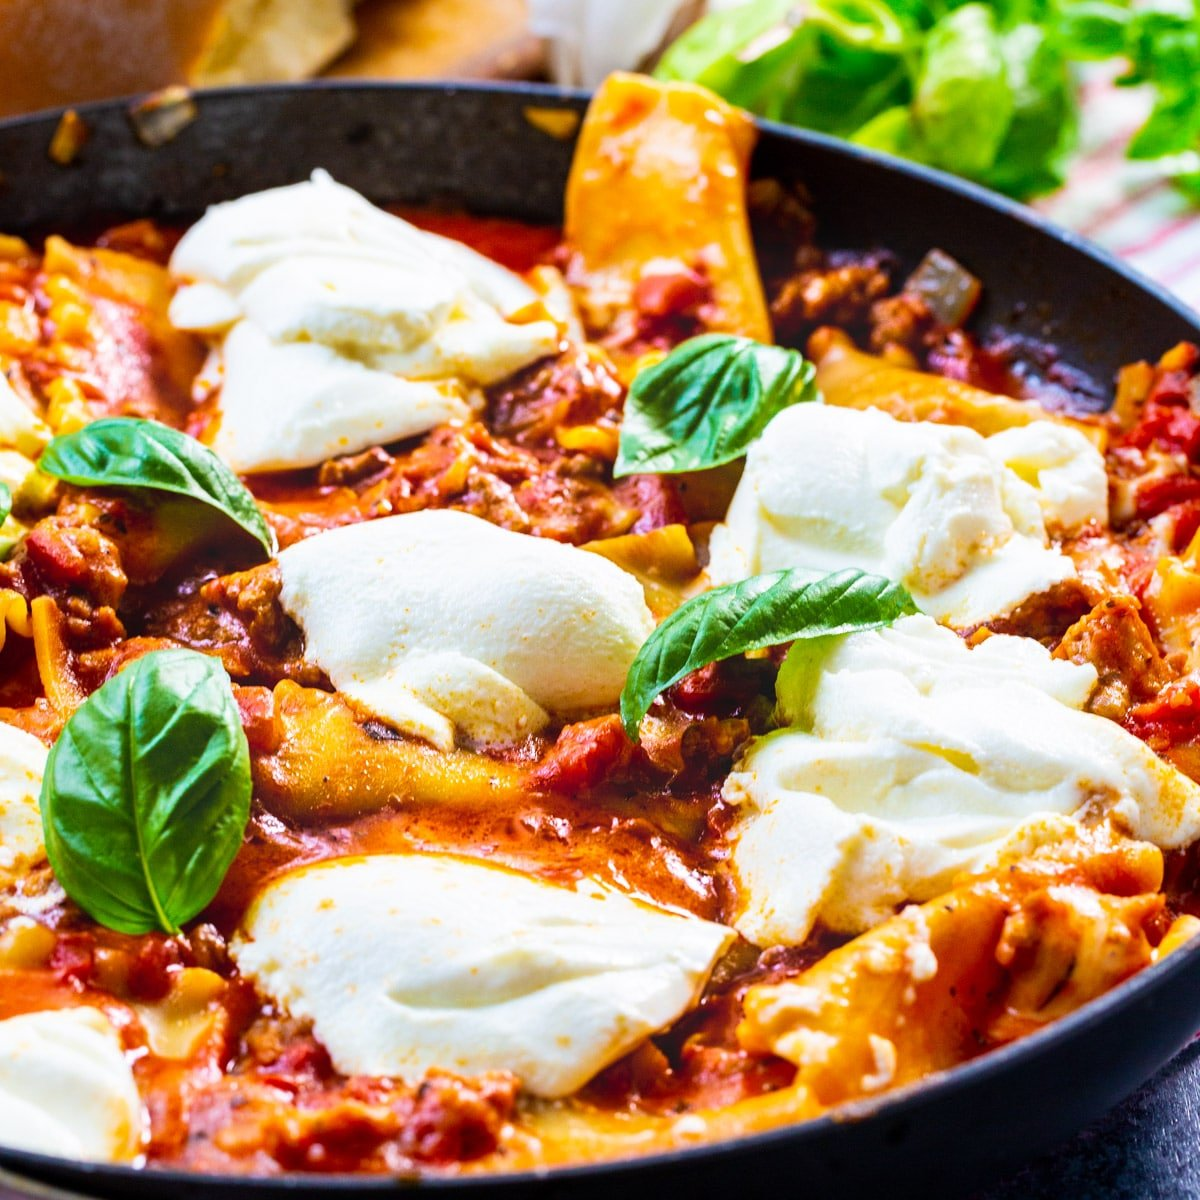 Skillet Lasagna in skillet topped with fresh basil.